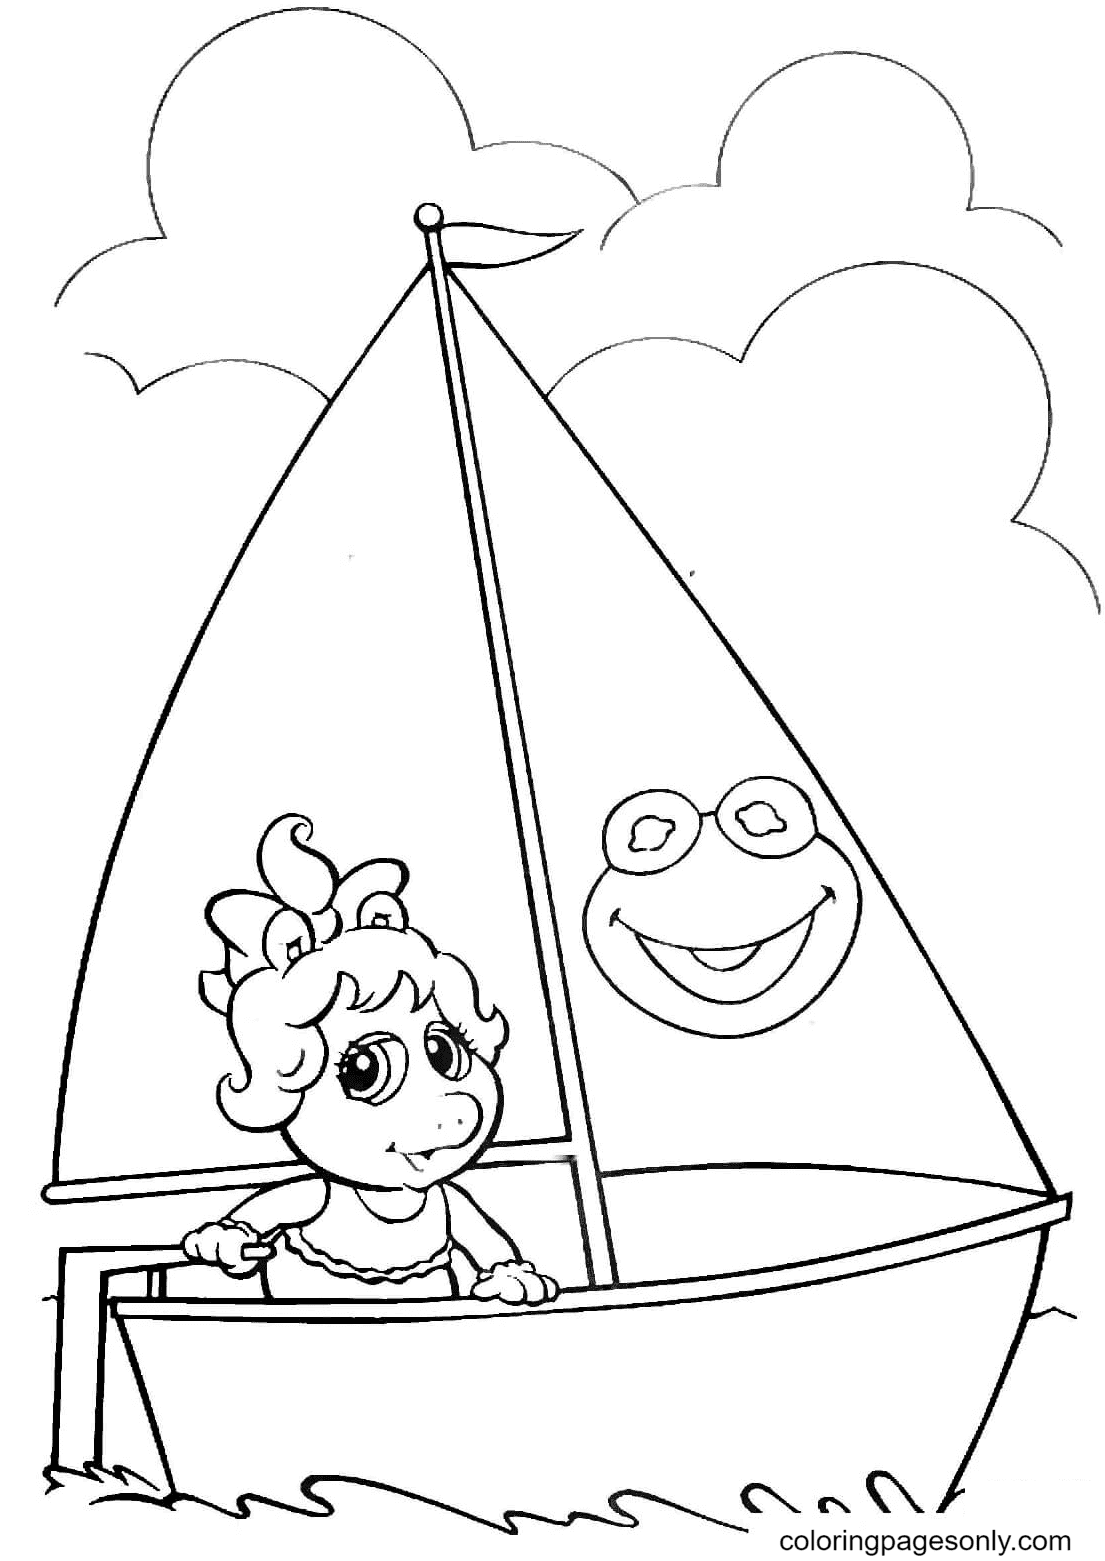 Miss Piggy on a Boat Coloring Page